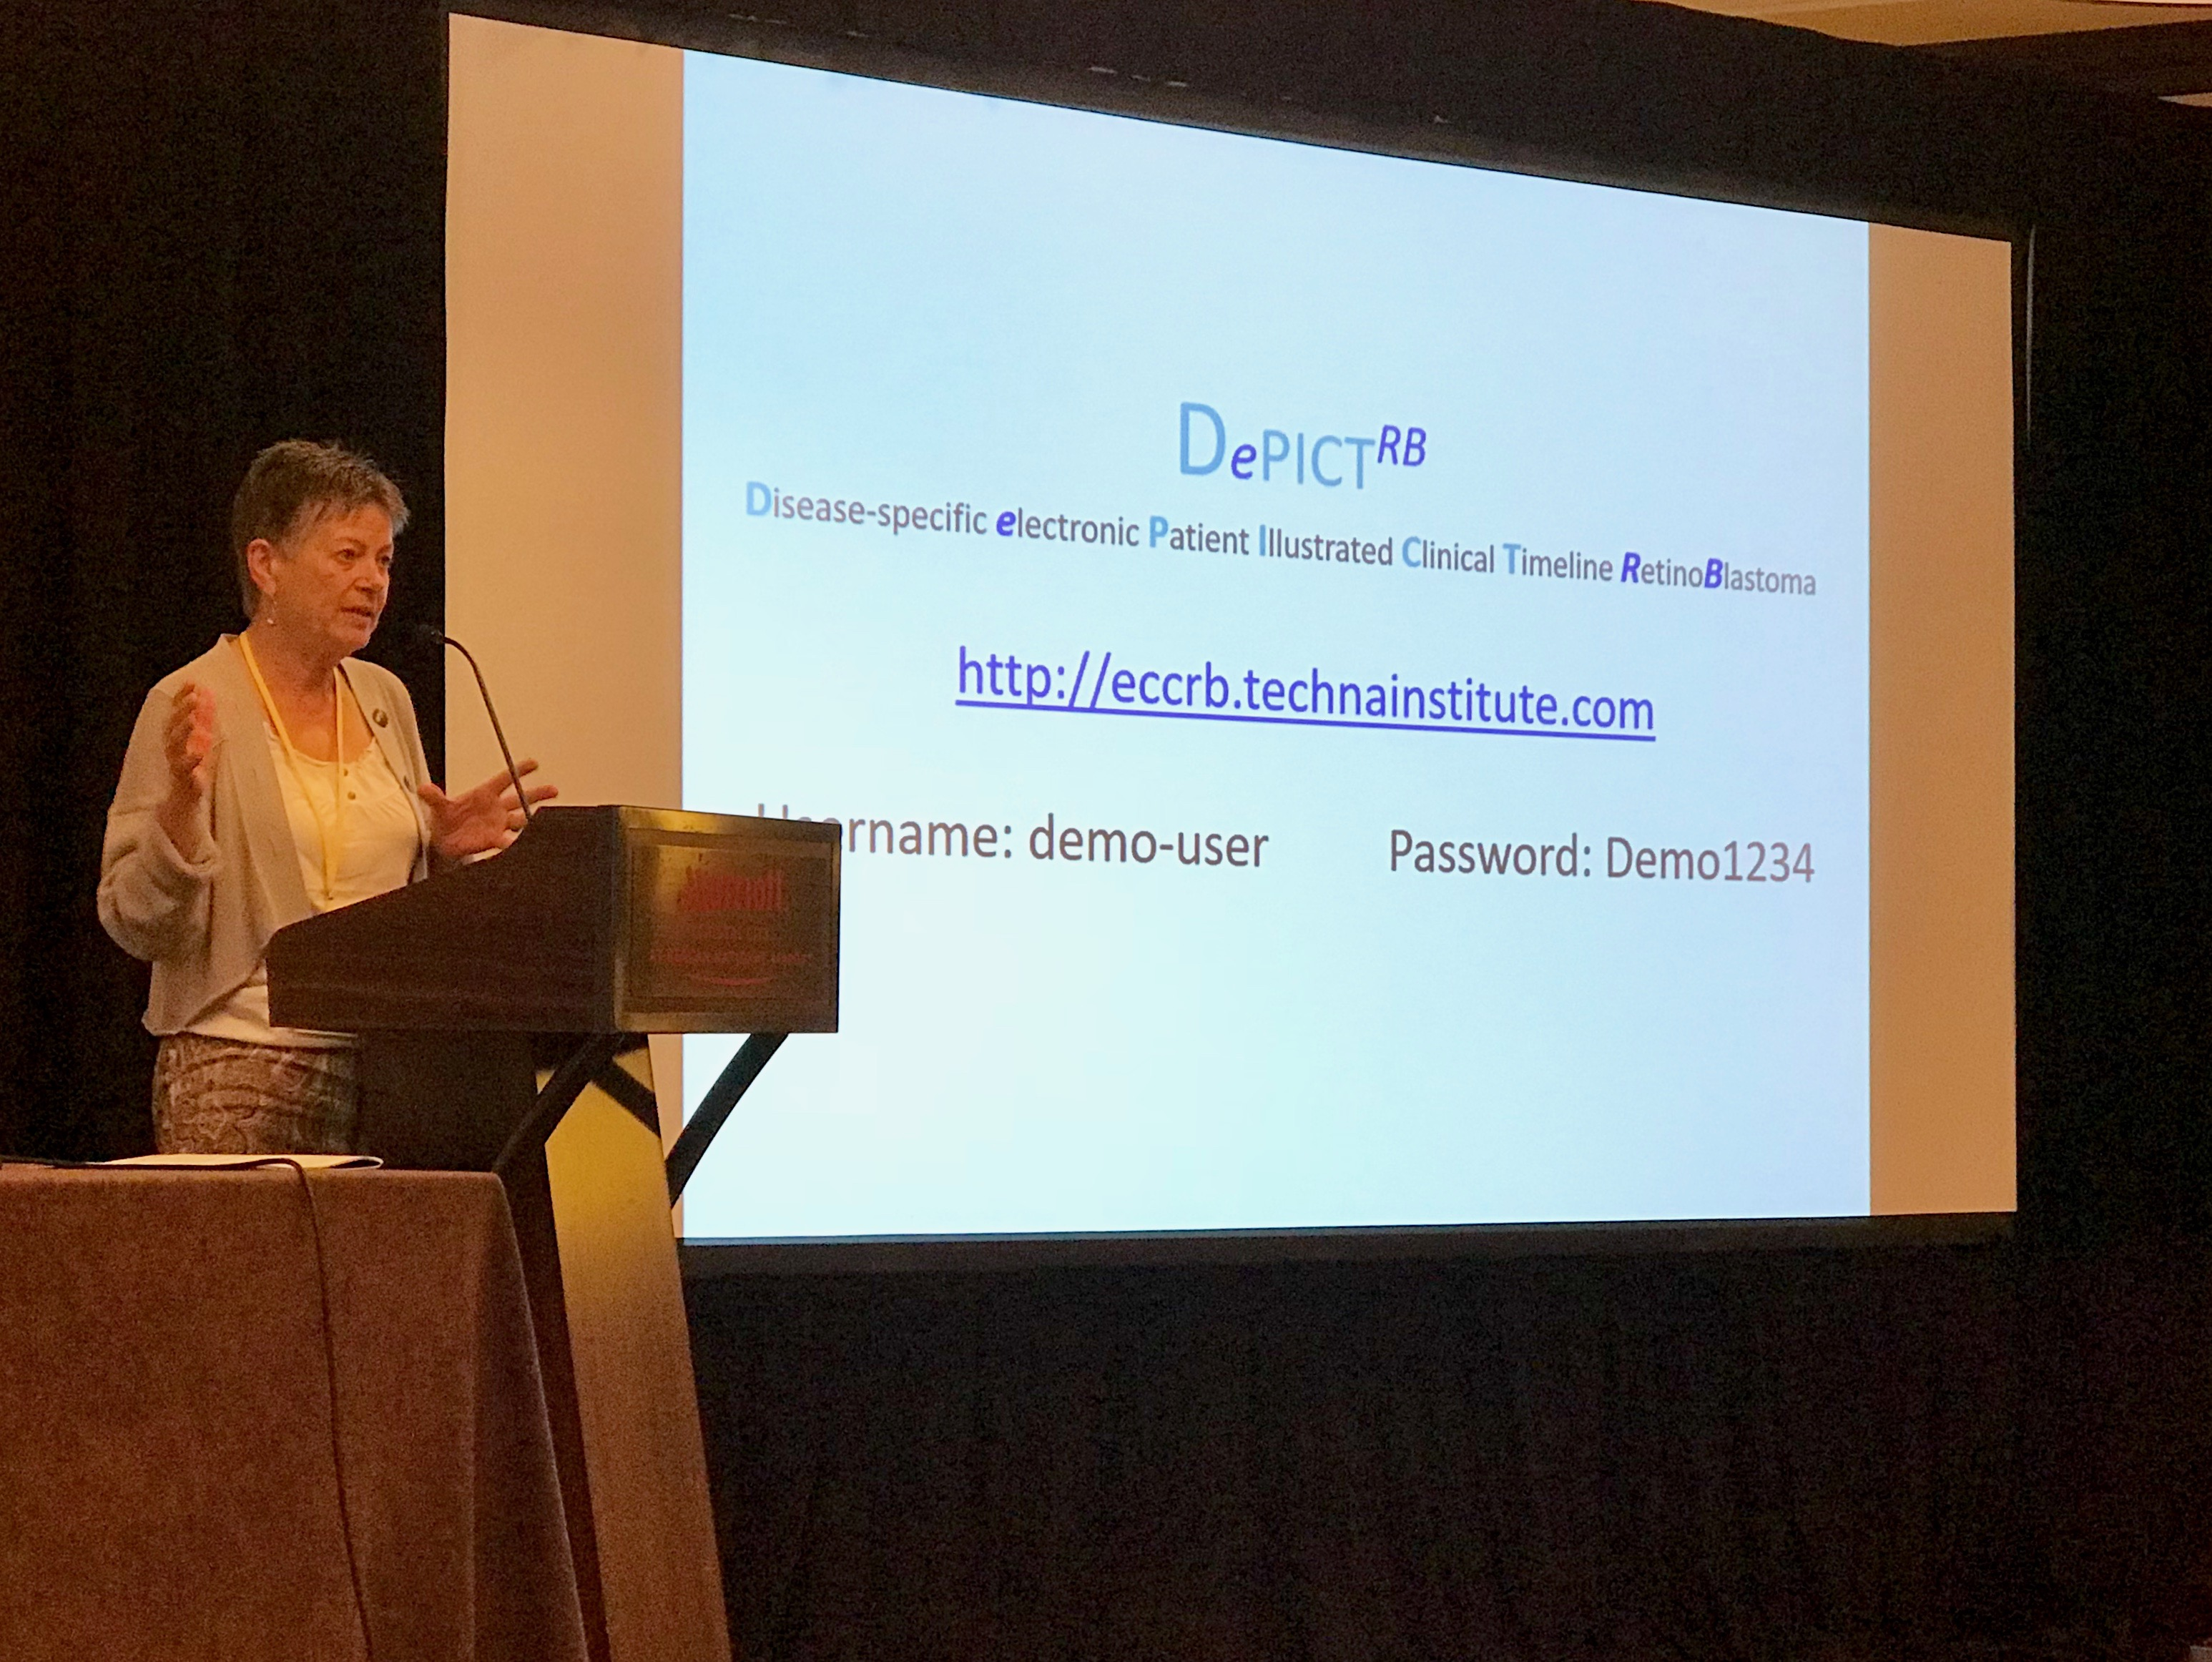 Brenda Gallie presented DePitct, a comprehensive point-of-care management system that allows parents to access their child's complete retinoblastoma medical record alongside the care team.